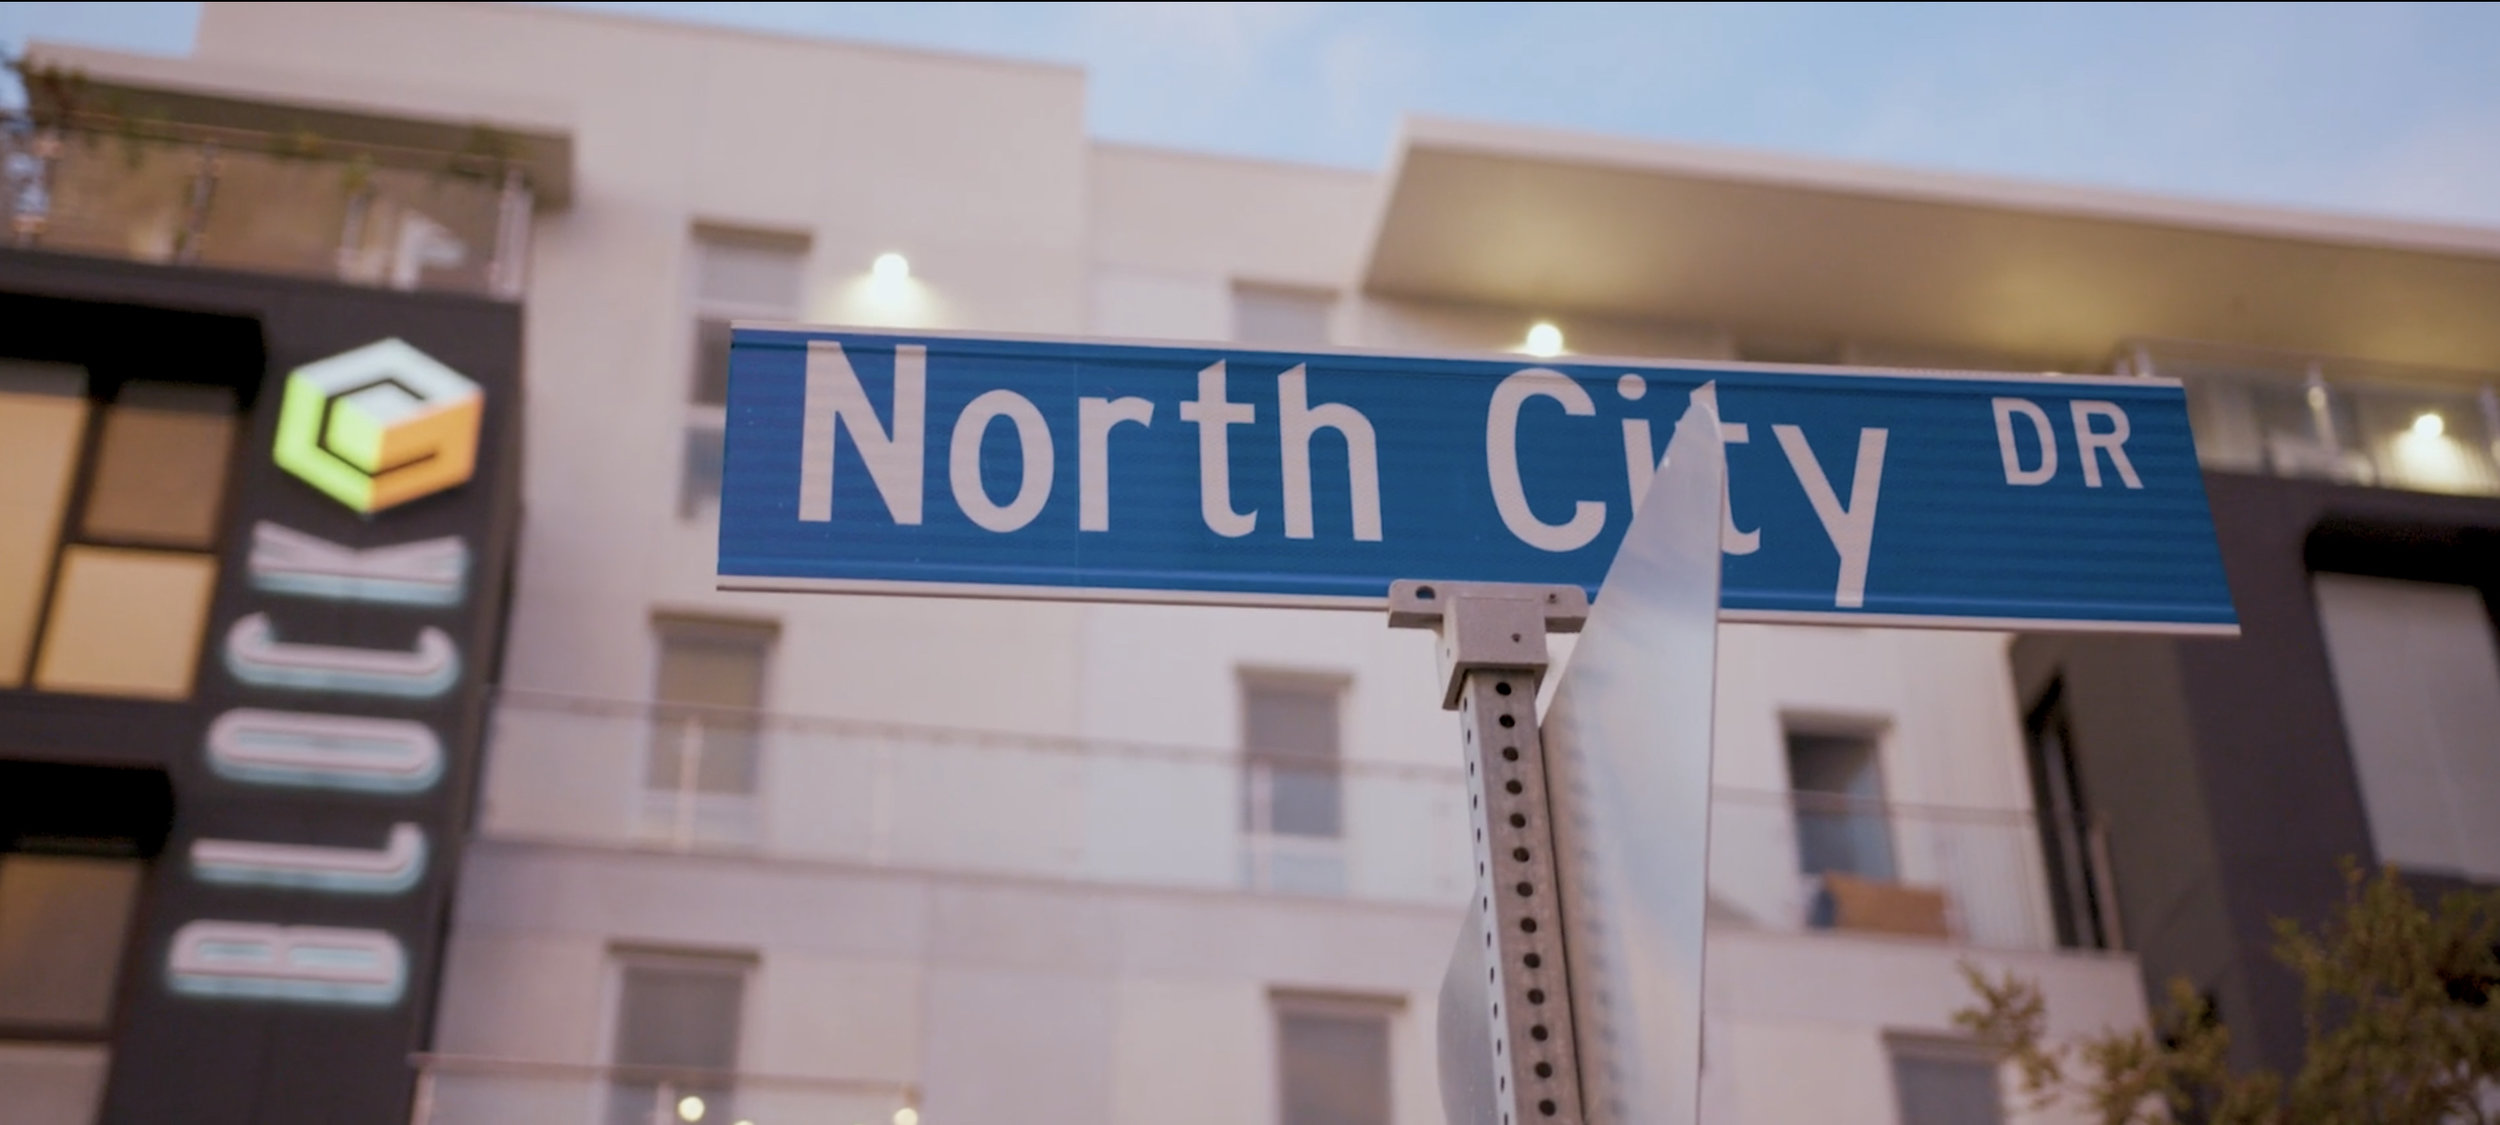 North City Drive_photo by Paradeigm.jpg